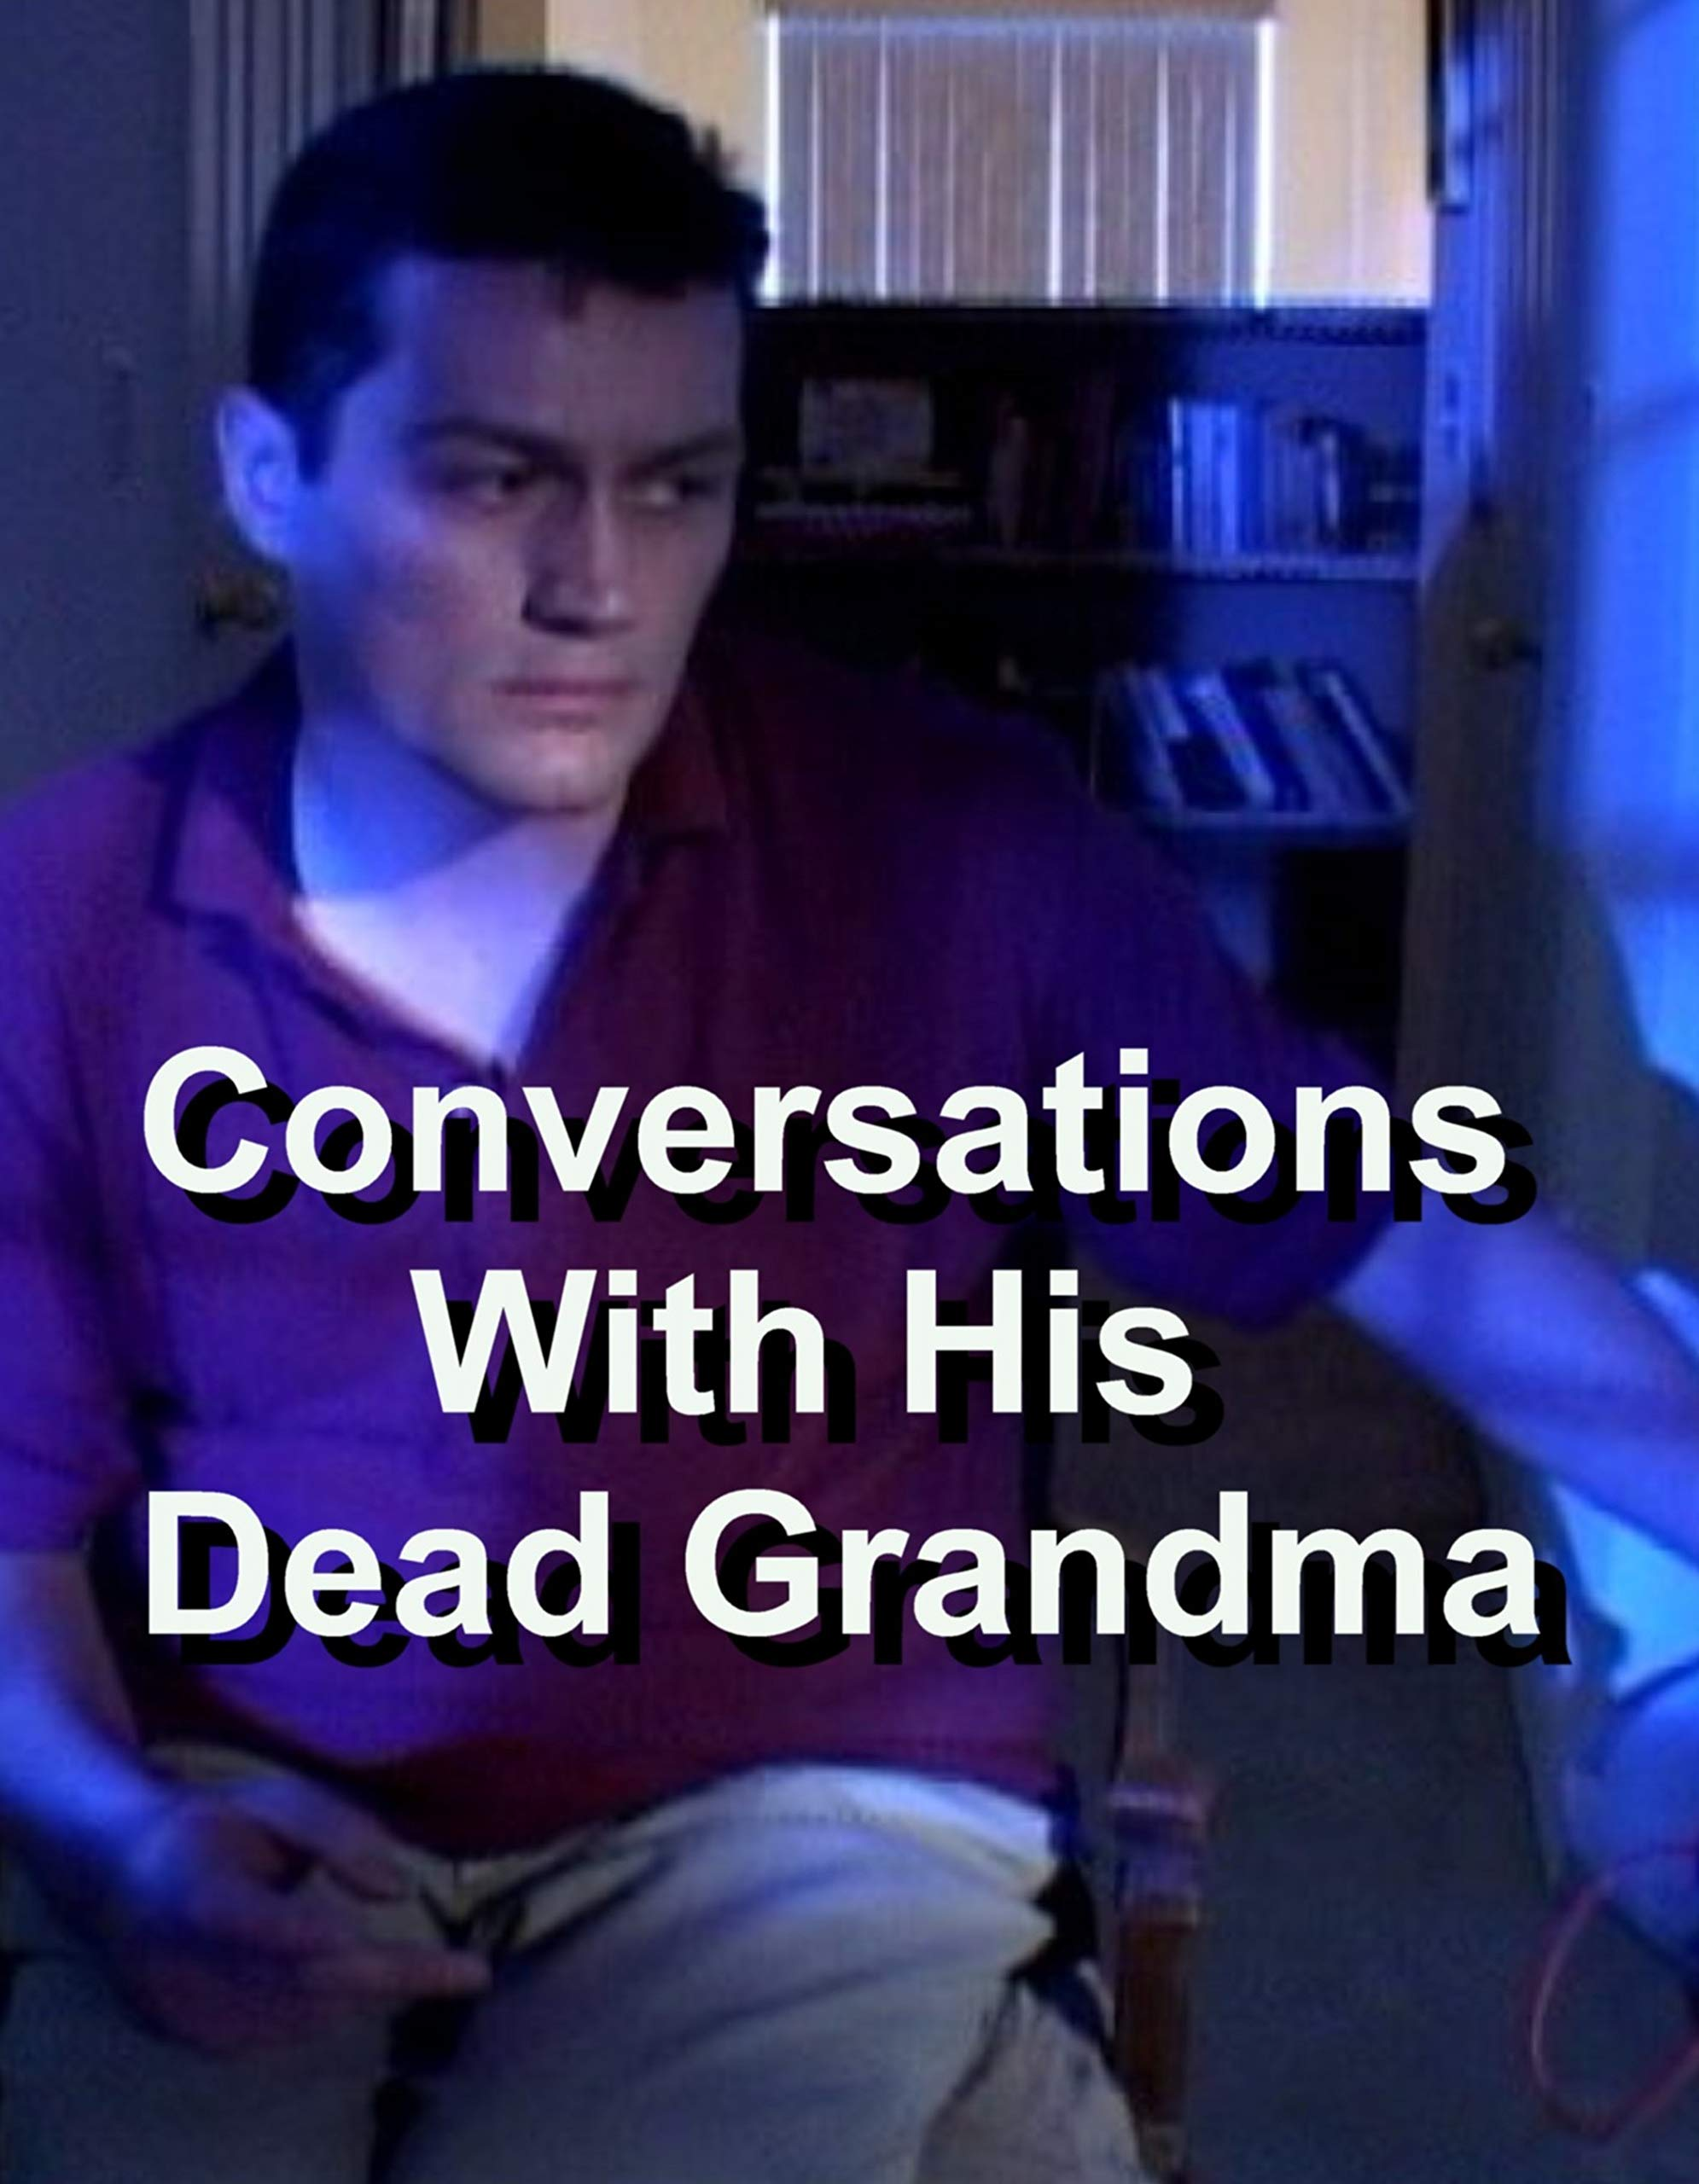 Conversations With His Dead Grandma